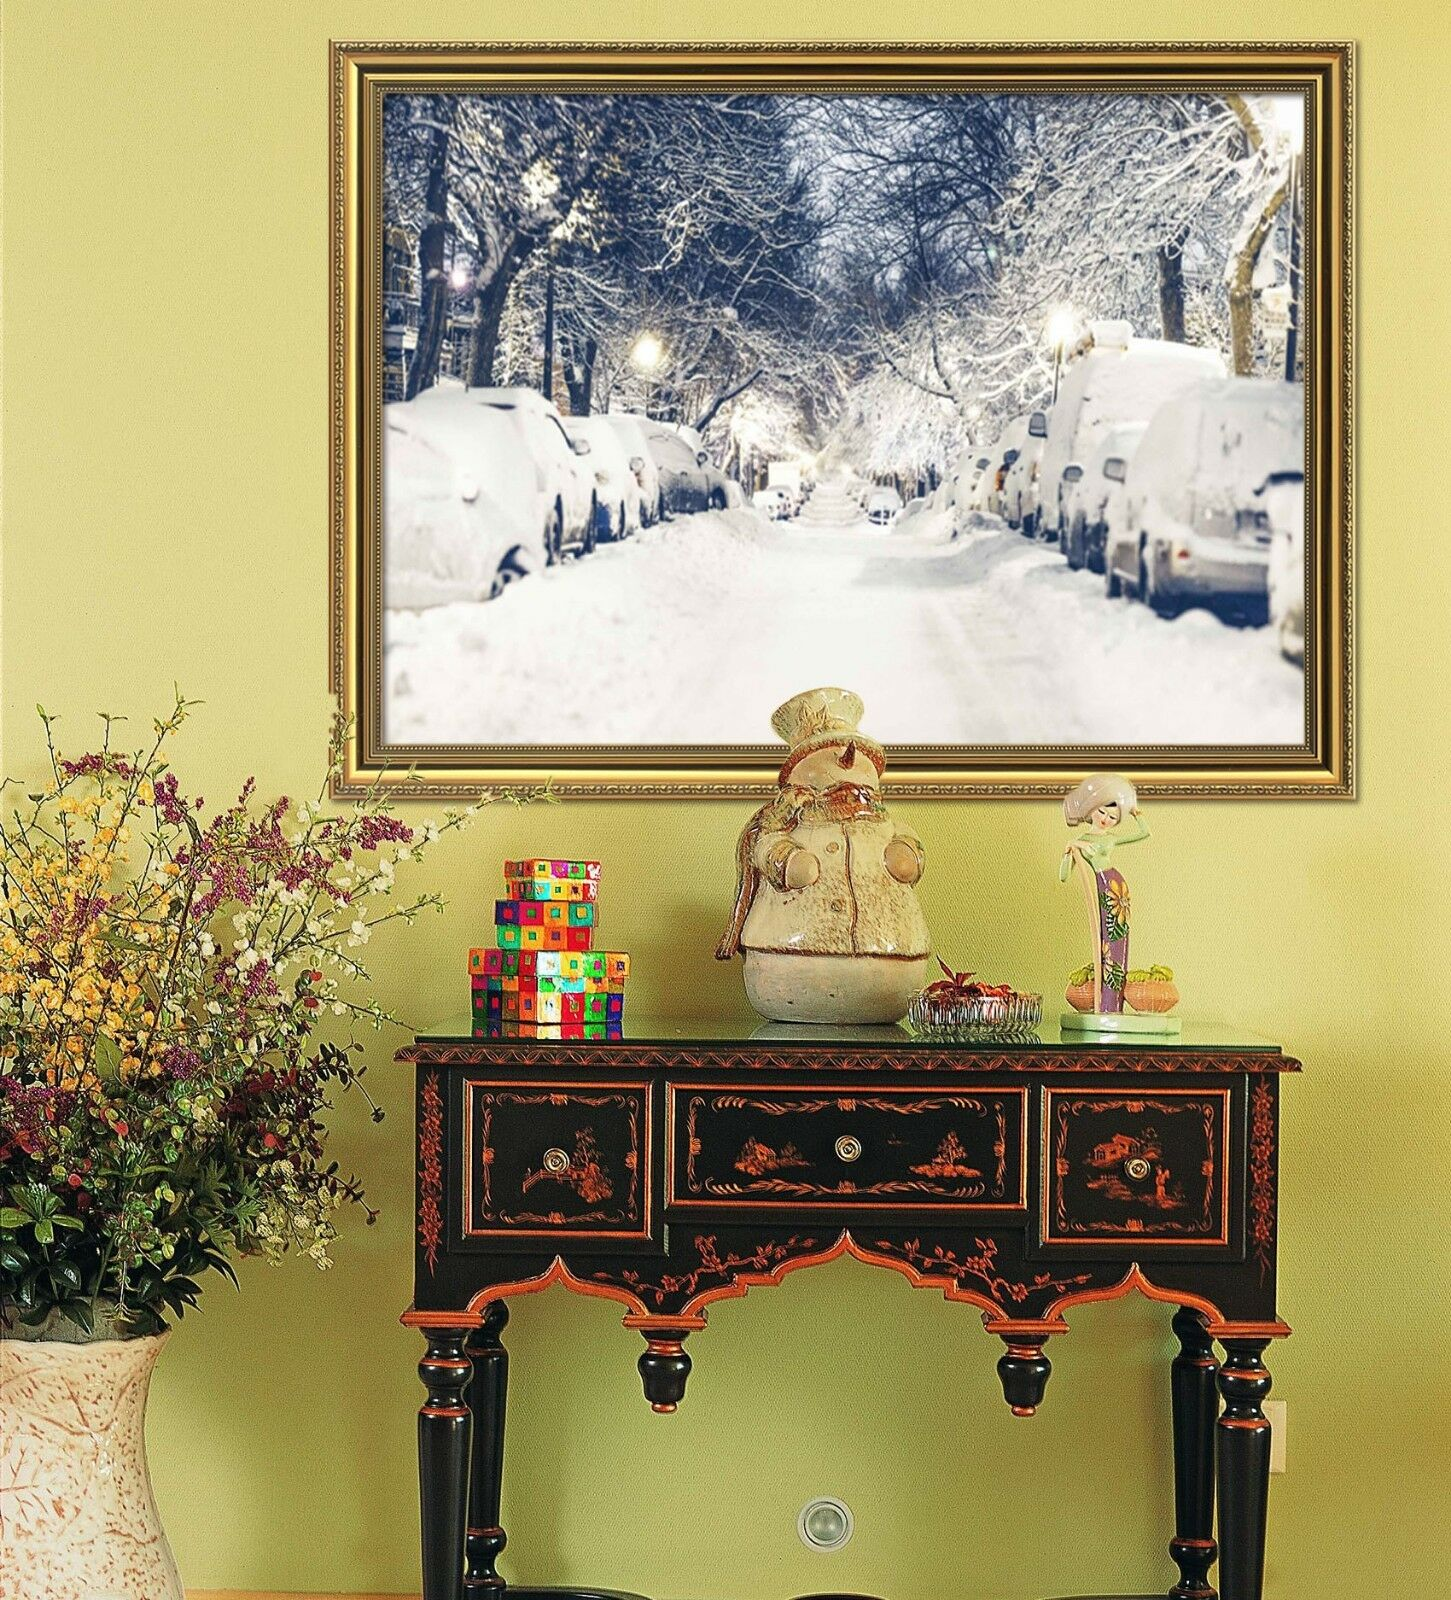 3D Snow Road 55 Framed Poster Home Decor Print Painting Art AJ WALLPAPER